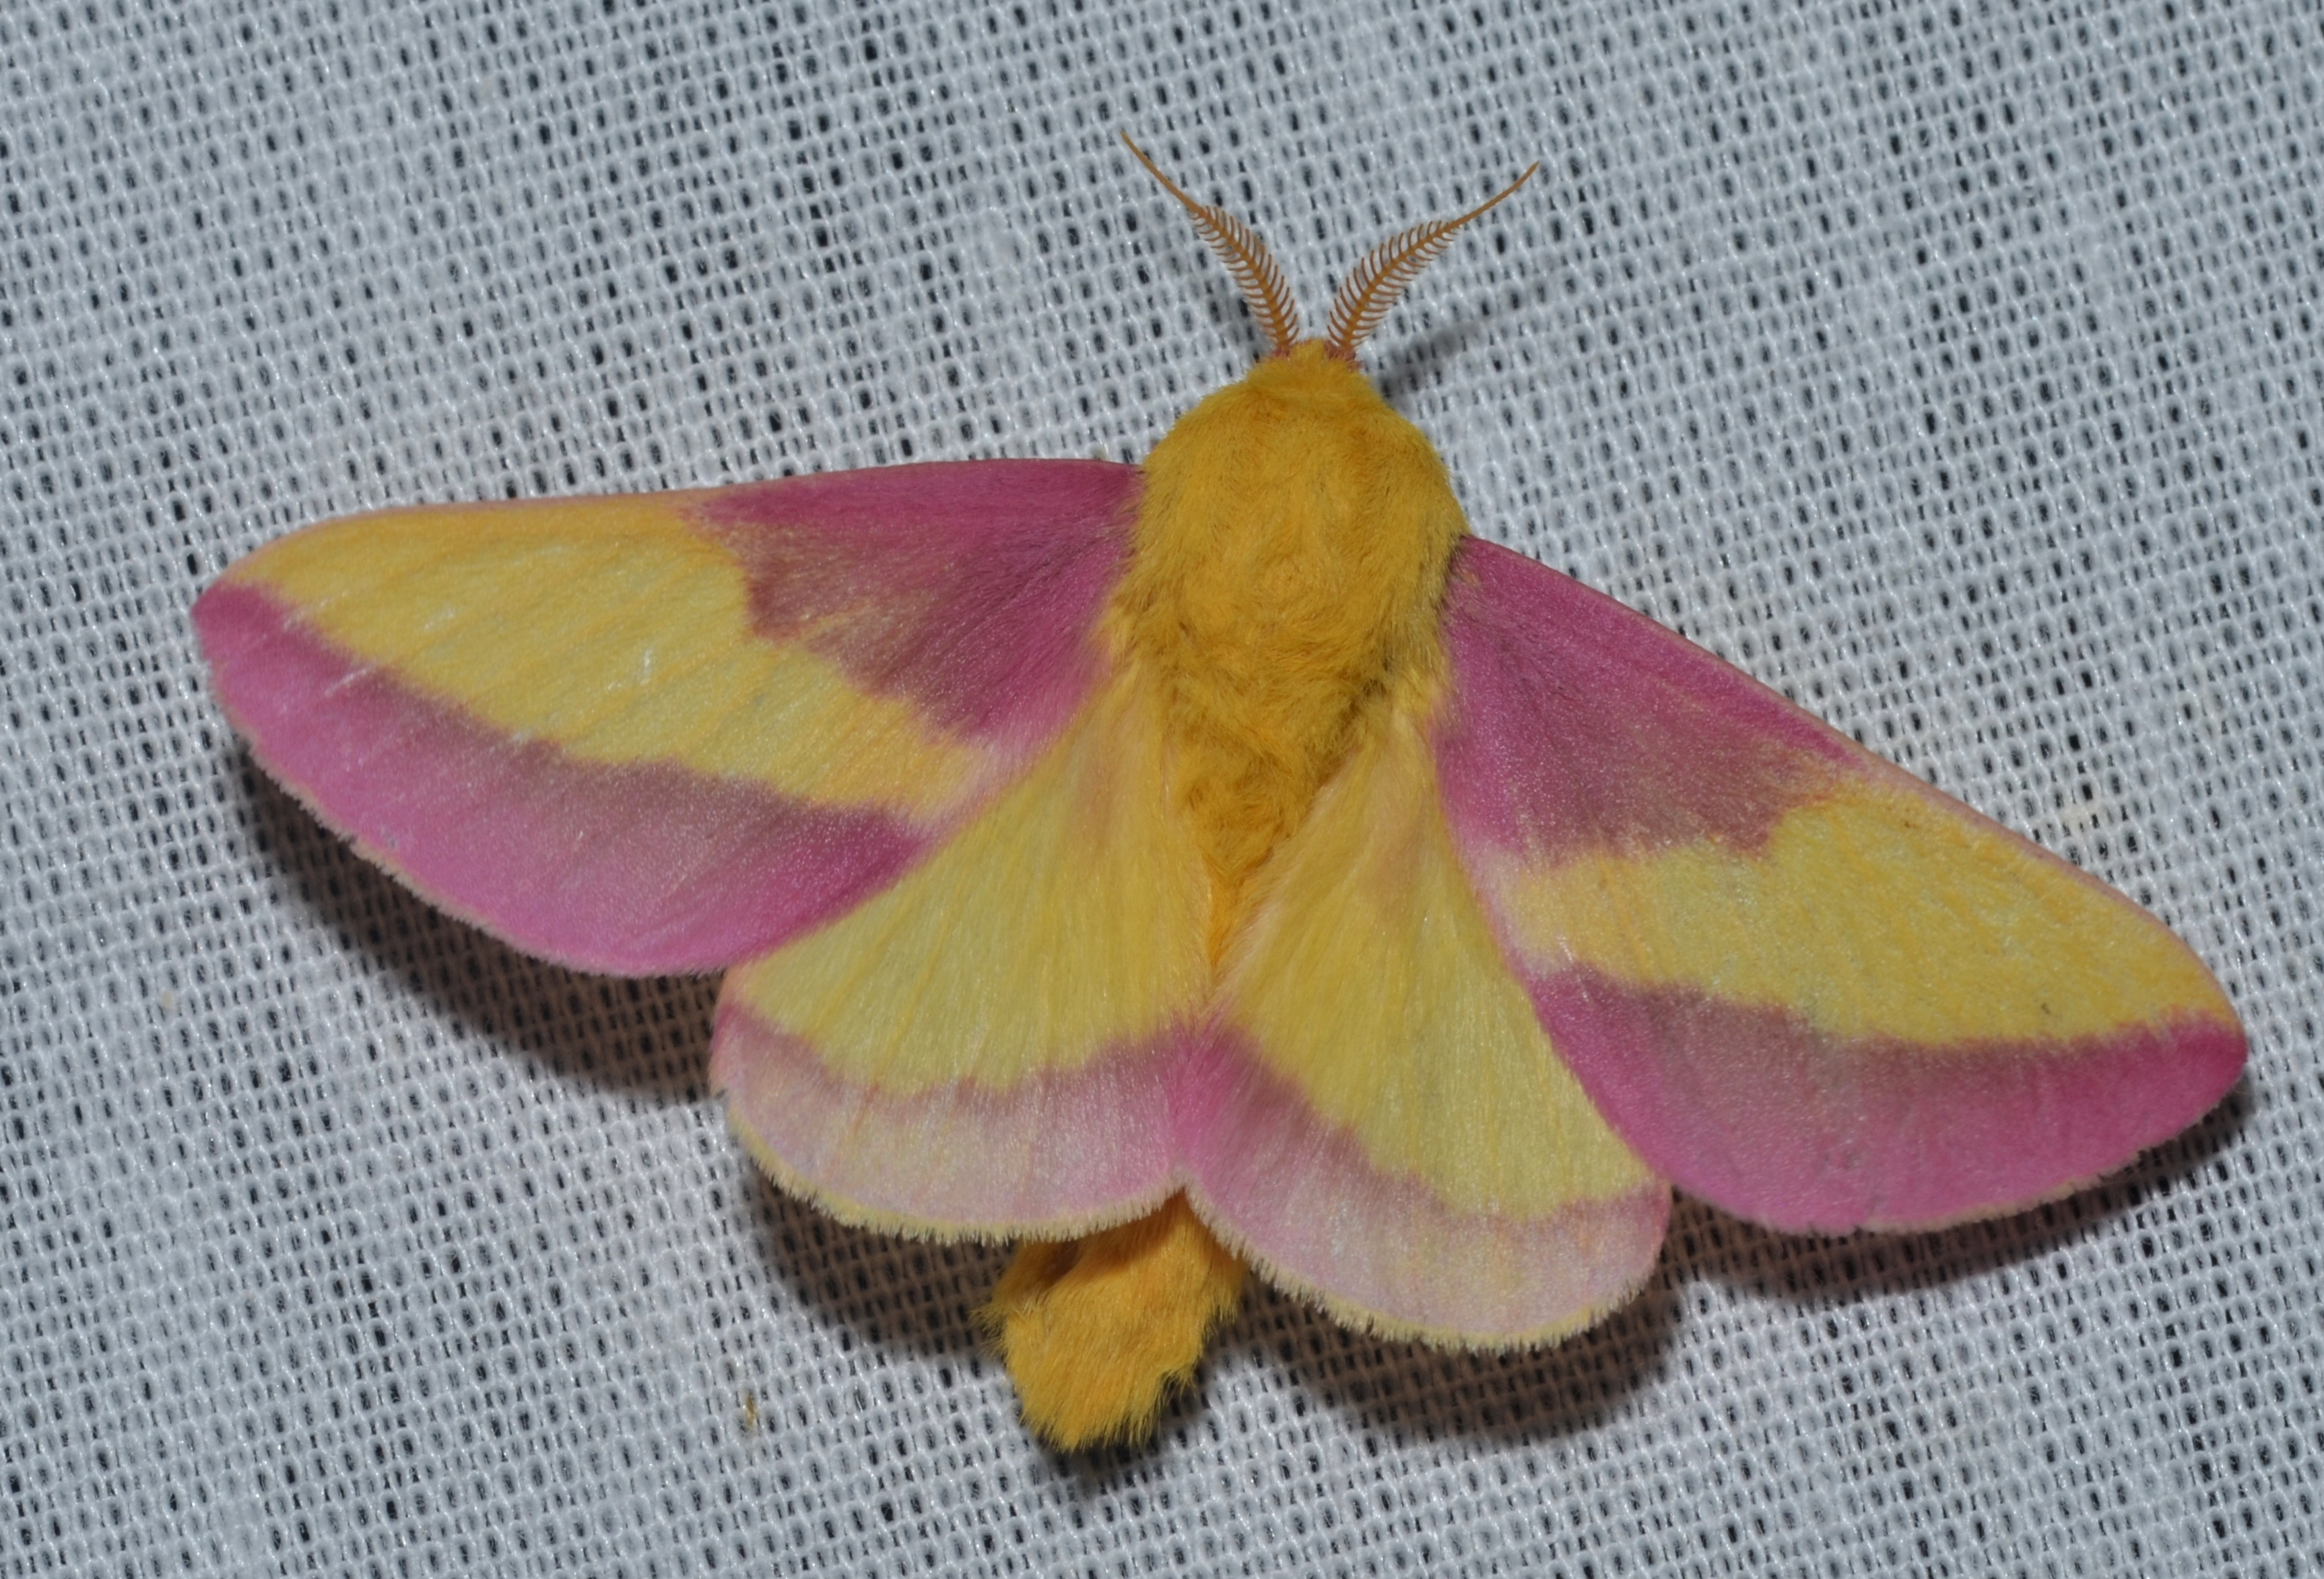 This rosy maple moth has feathery antennae, and it's holding its wings flat.